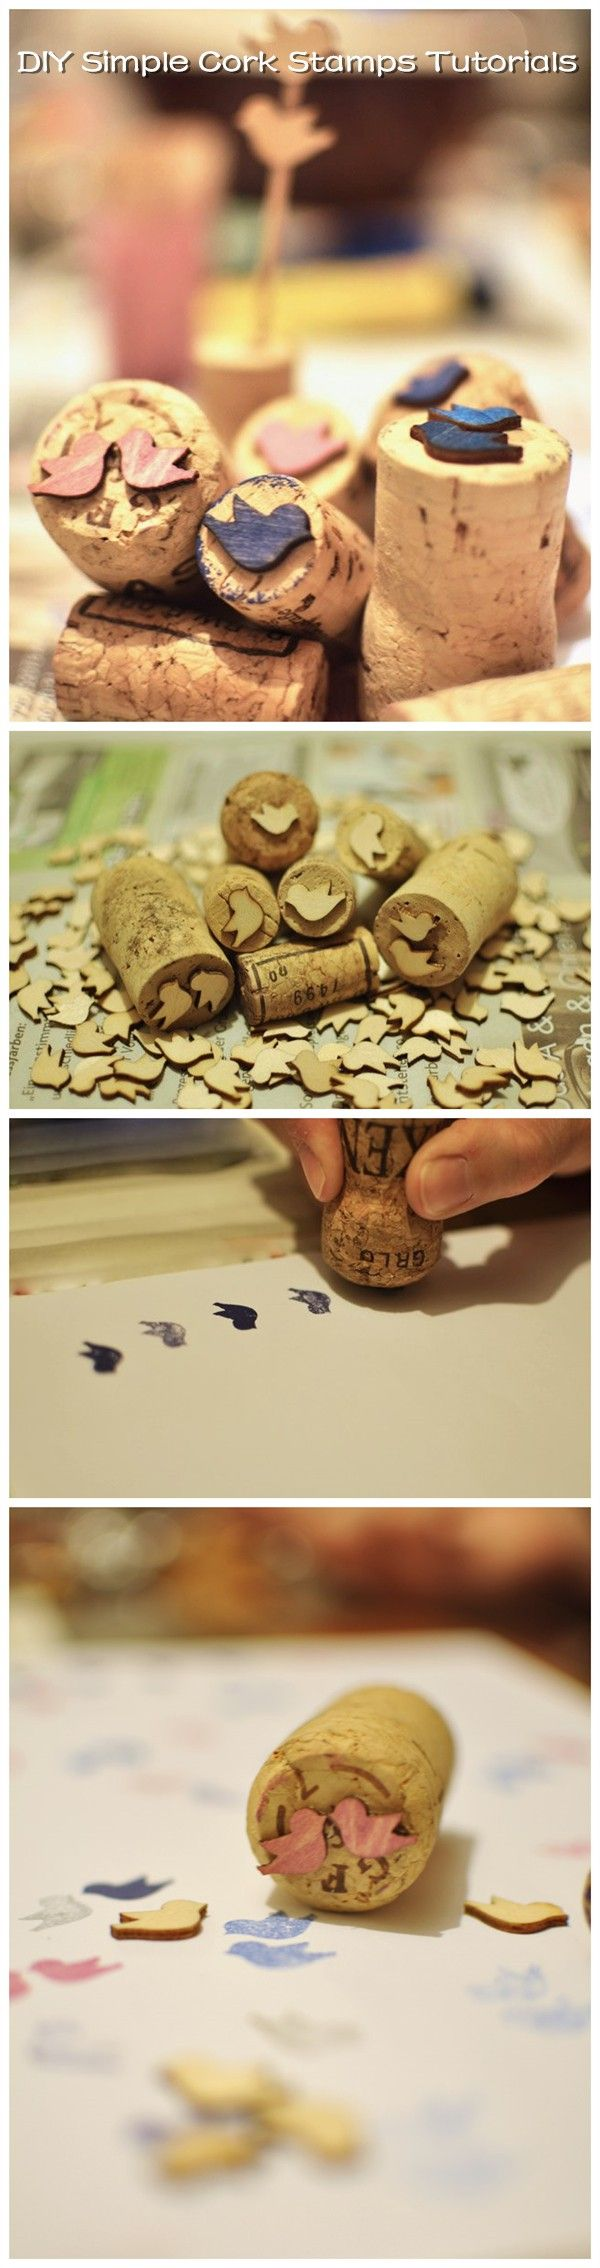 DIY Simple Cork Stamps Tutorials